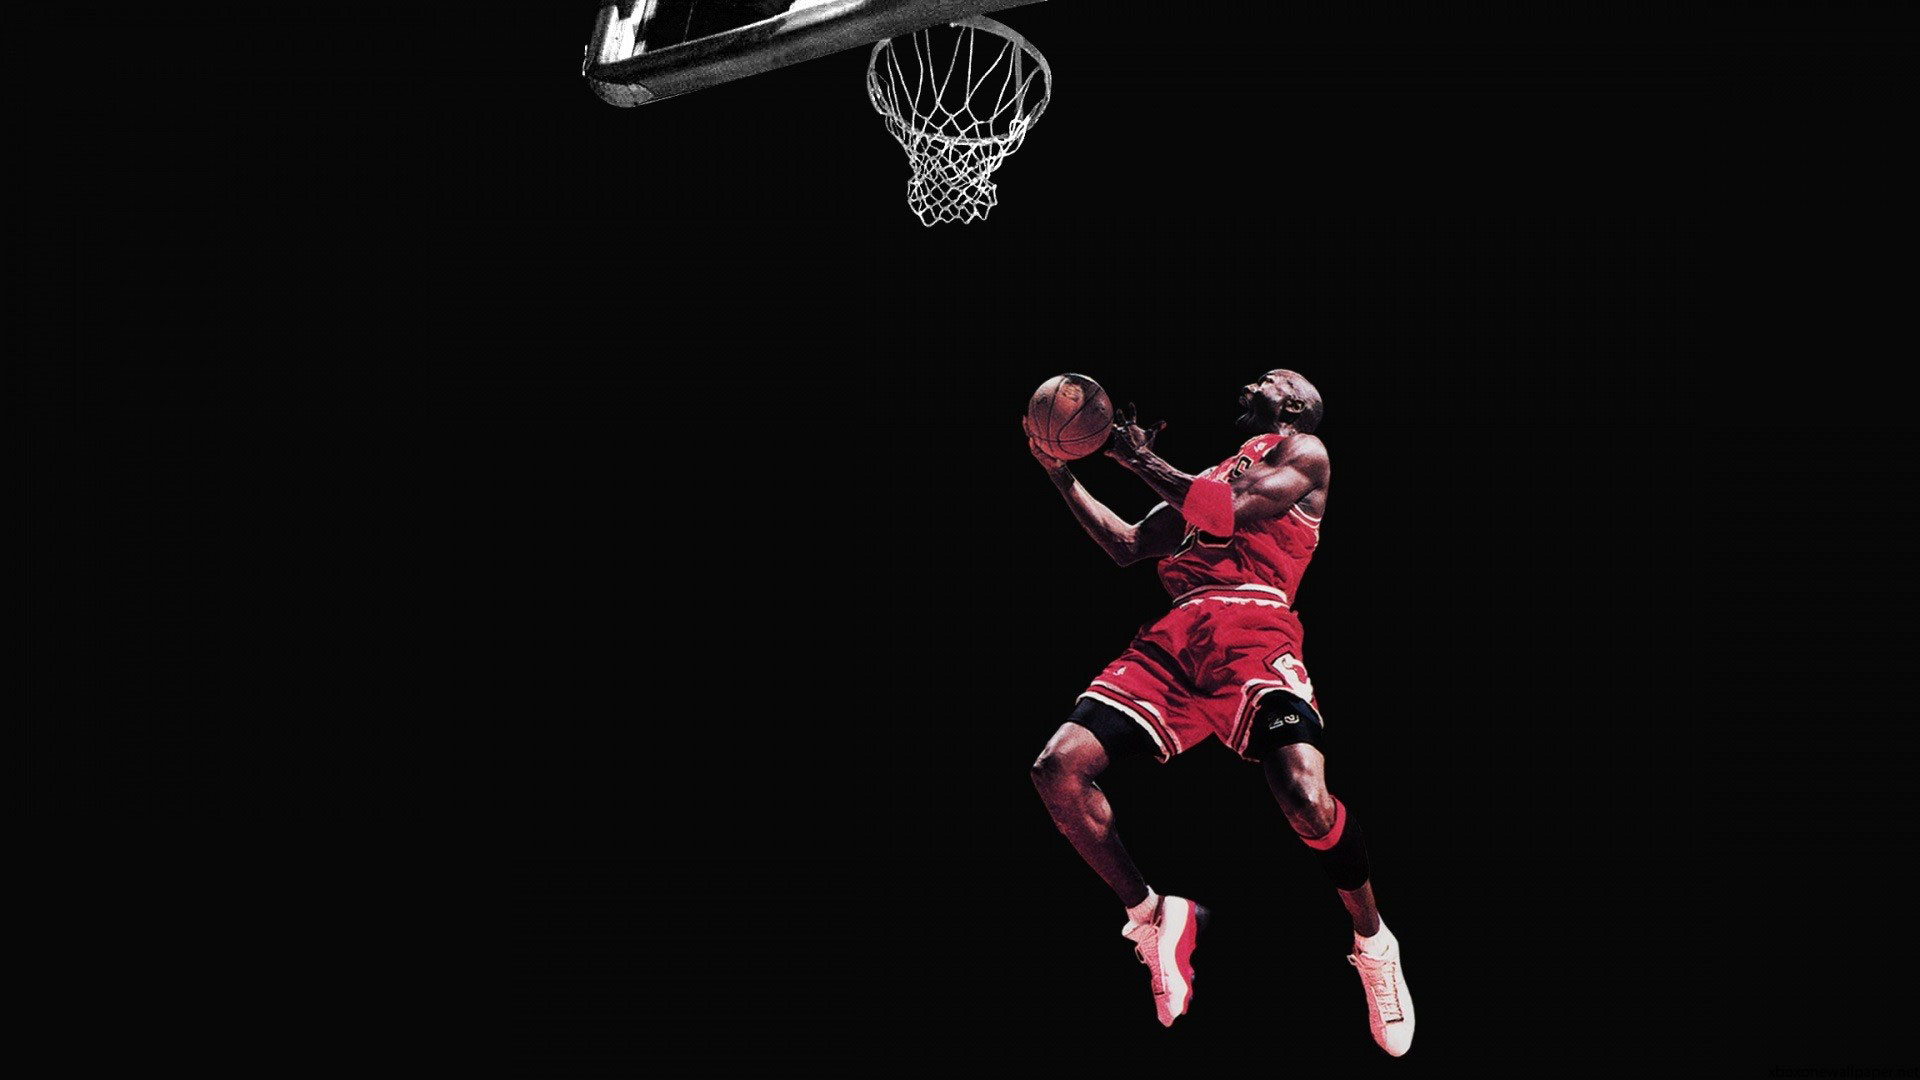 fonds d'écran michael jordan : tous les wallpapers michael jordan